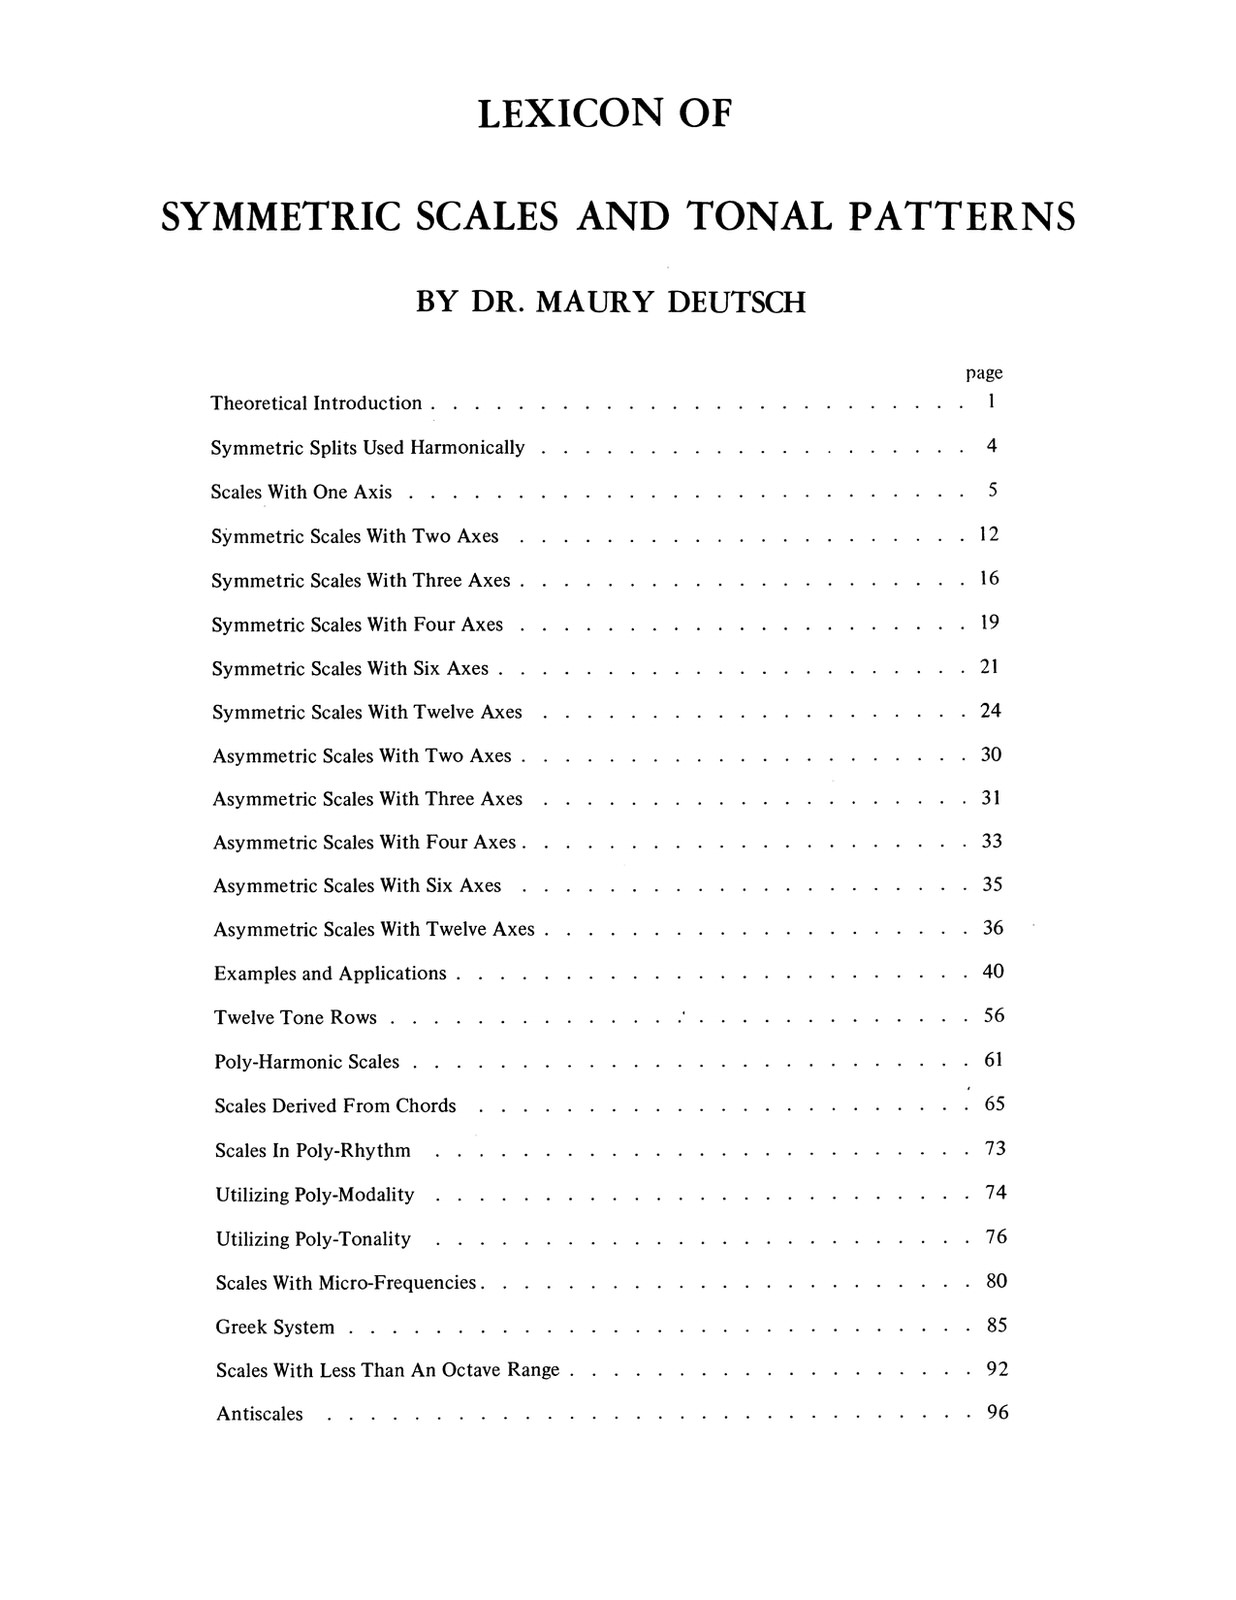 Deutsch, Lexicon of Symmetric Scales and Tonal Patterns-p02